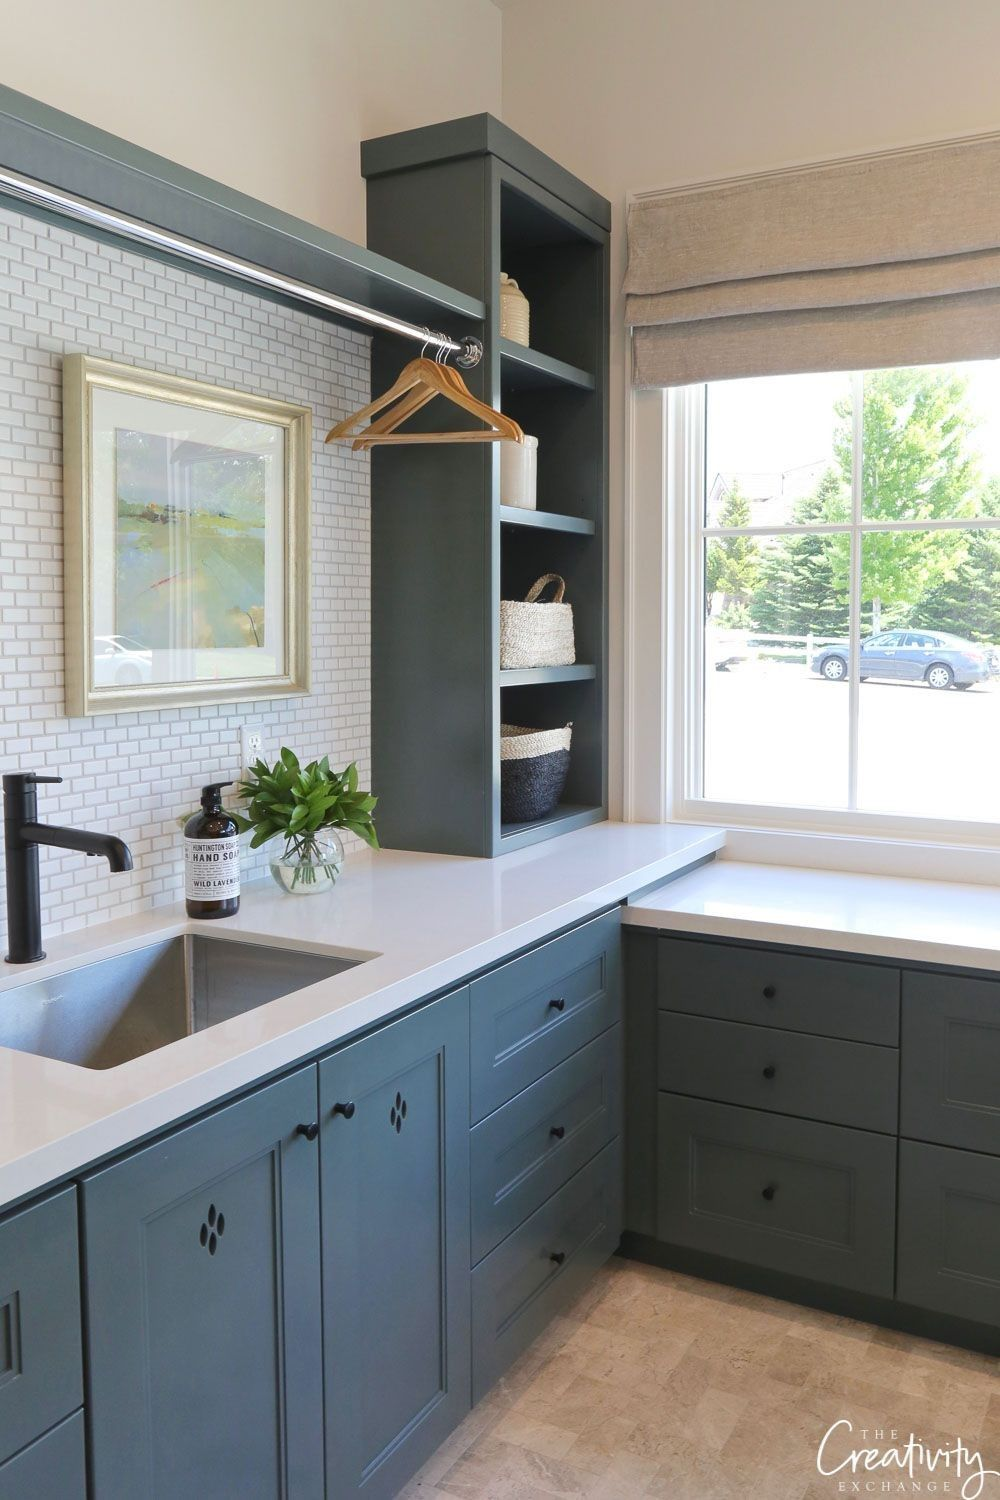 10x10 Laundry Room Layout: Pin By Omie On Controlling Chaos In 2020